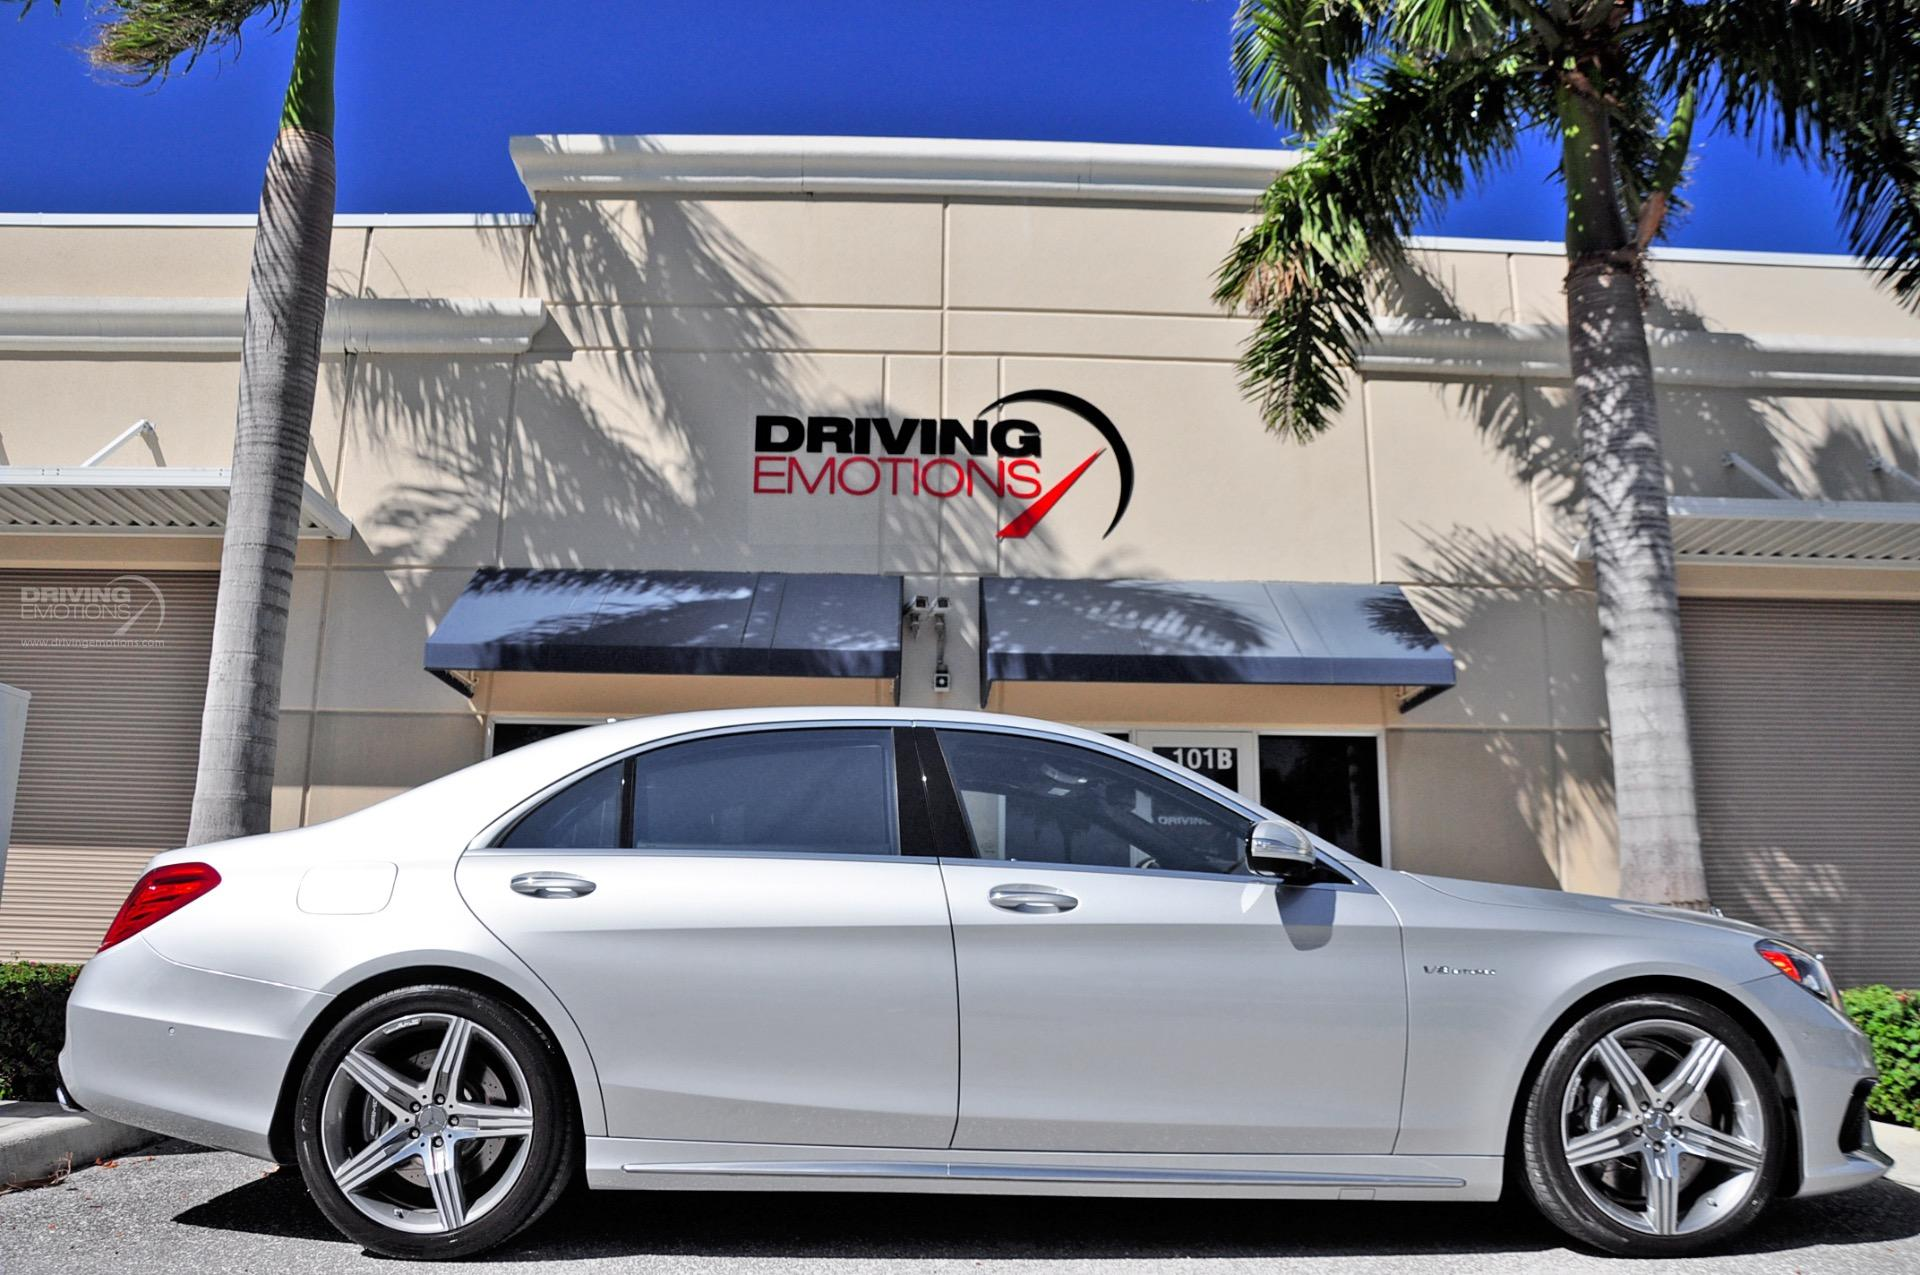 2014 mercedes benz s63 amg s63 amg stock 5858 for sale for Florida mercedes benz